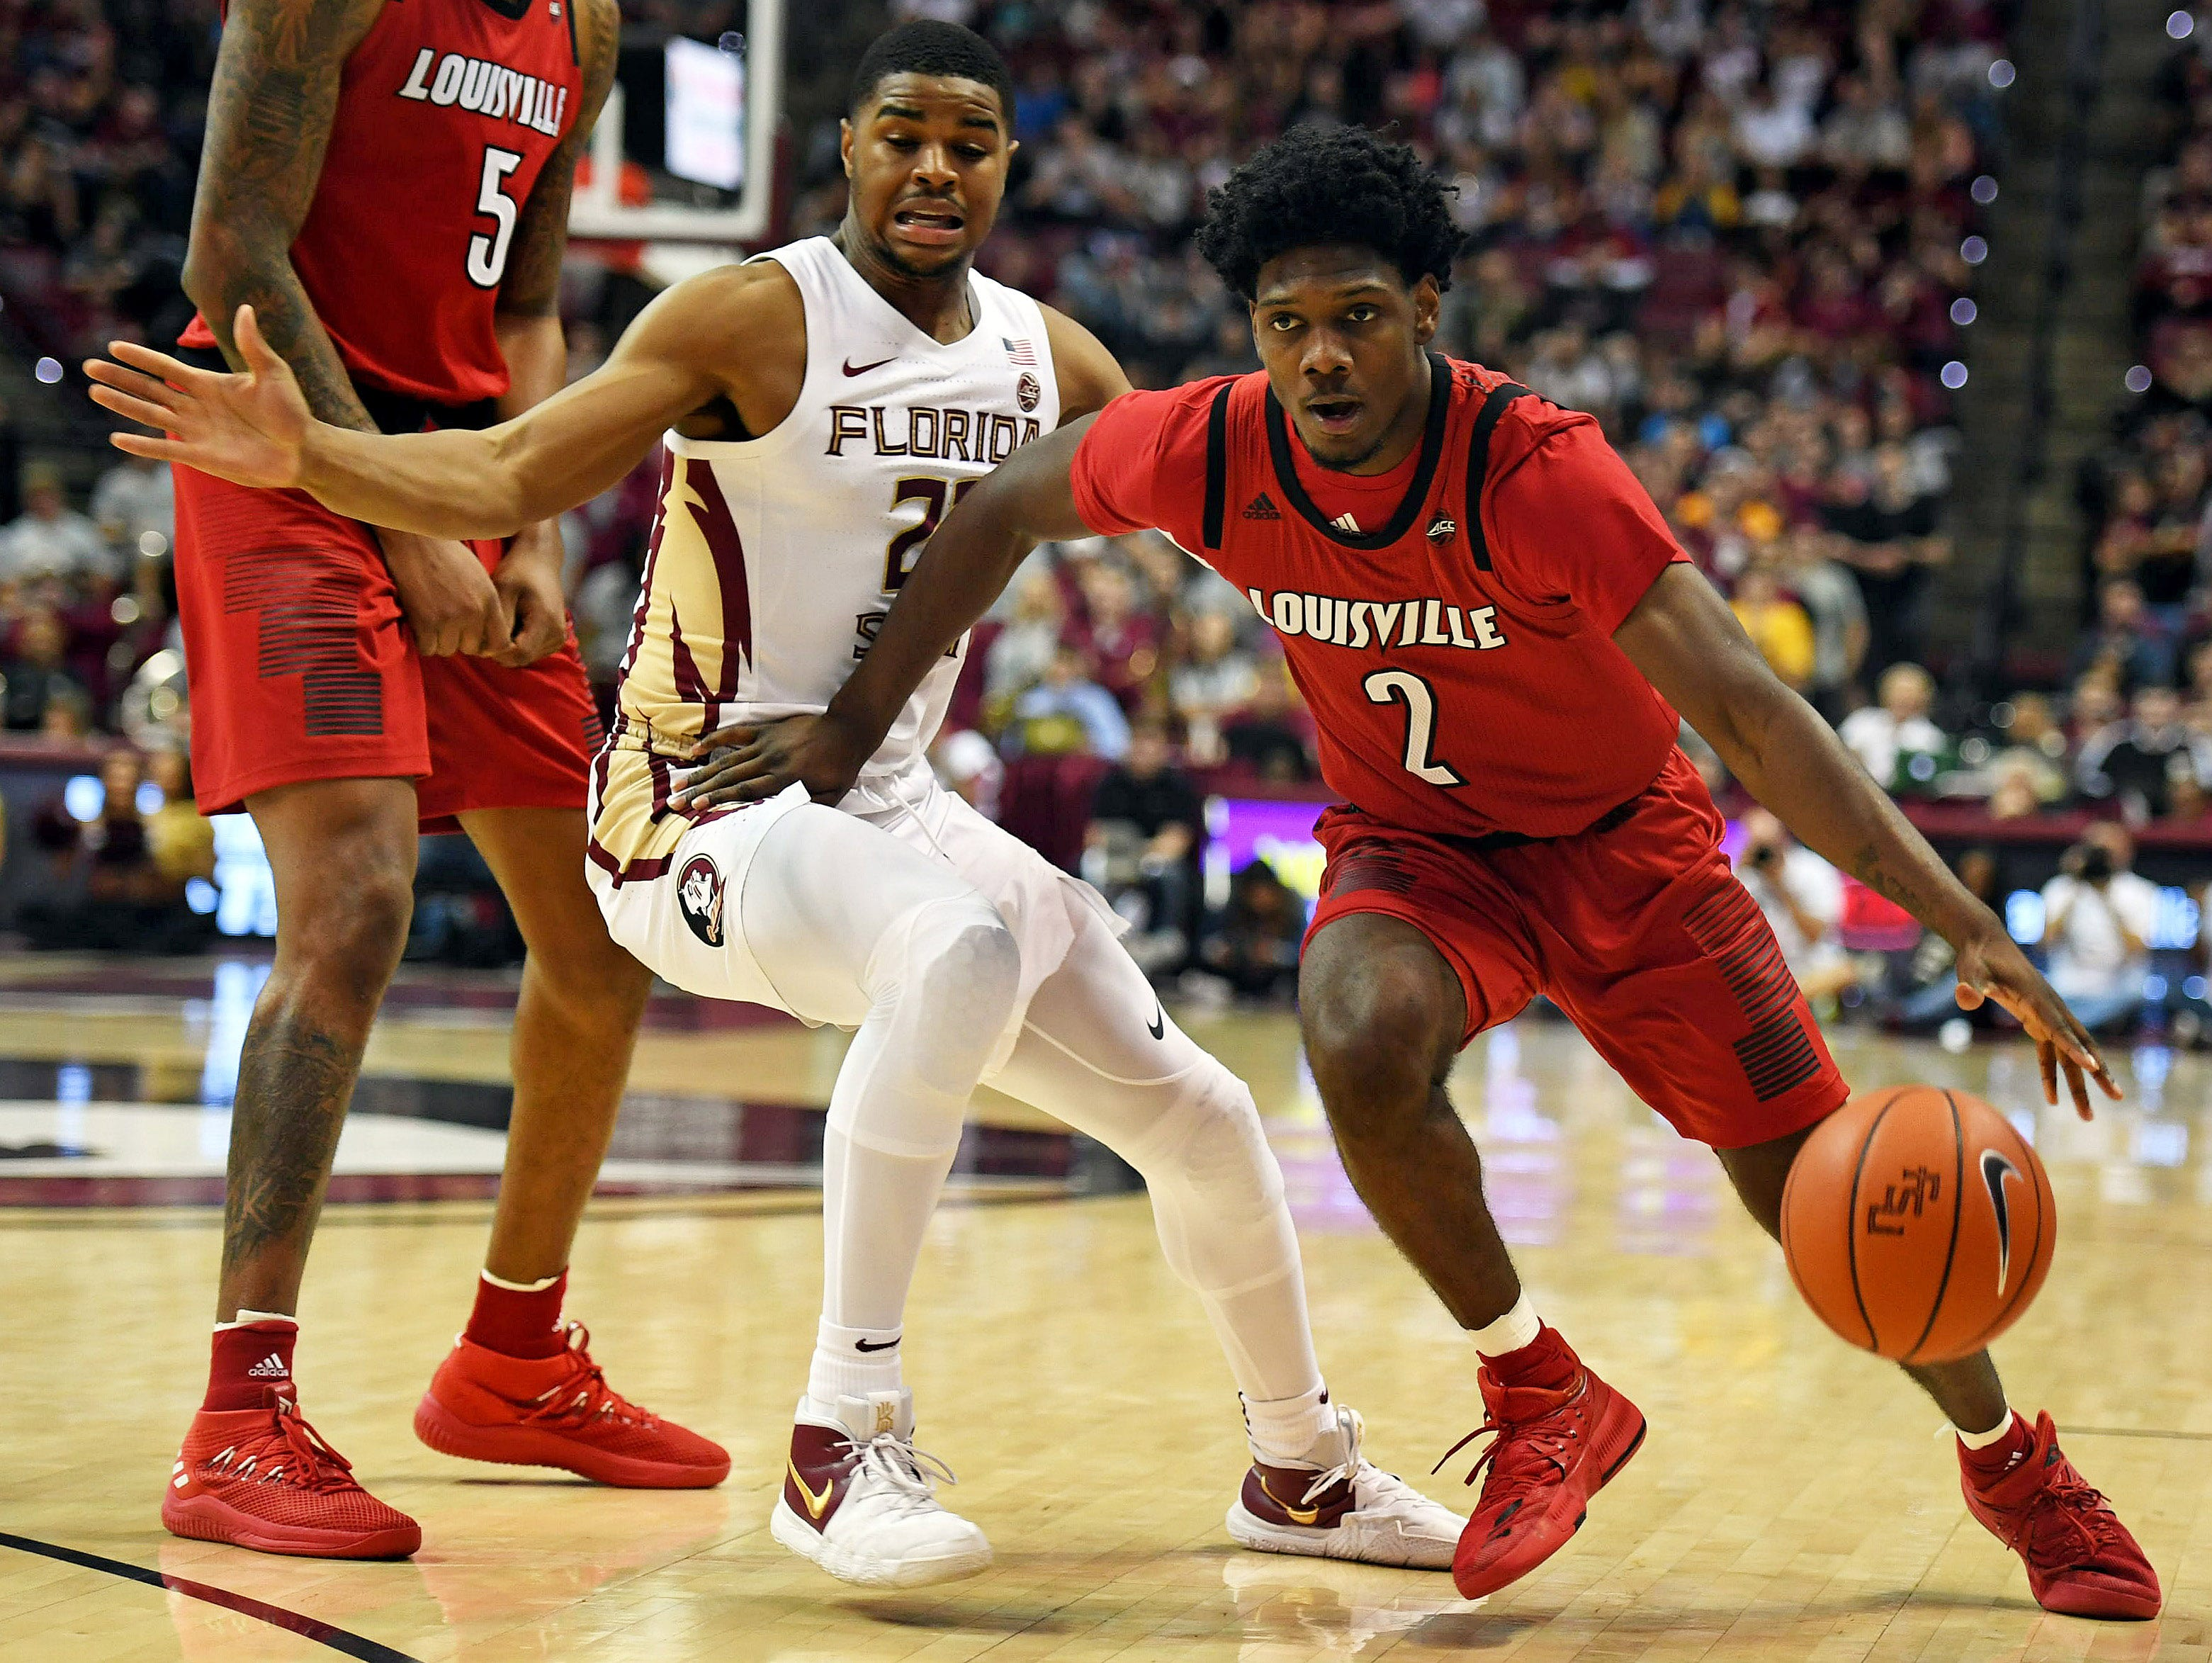 Feb 9, 2019; Tallahassee, FL, USA; Louisville Cardinals guard Darius Perry (2) drives the ball against Florida State Seminoles guard MJ Walker (23) during the first half at Donald L. Tucker Center. Mandatory Credit: Melina Myers-USA TODAY Sports